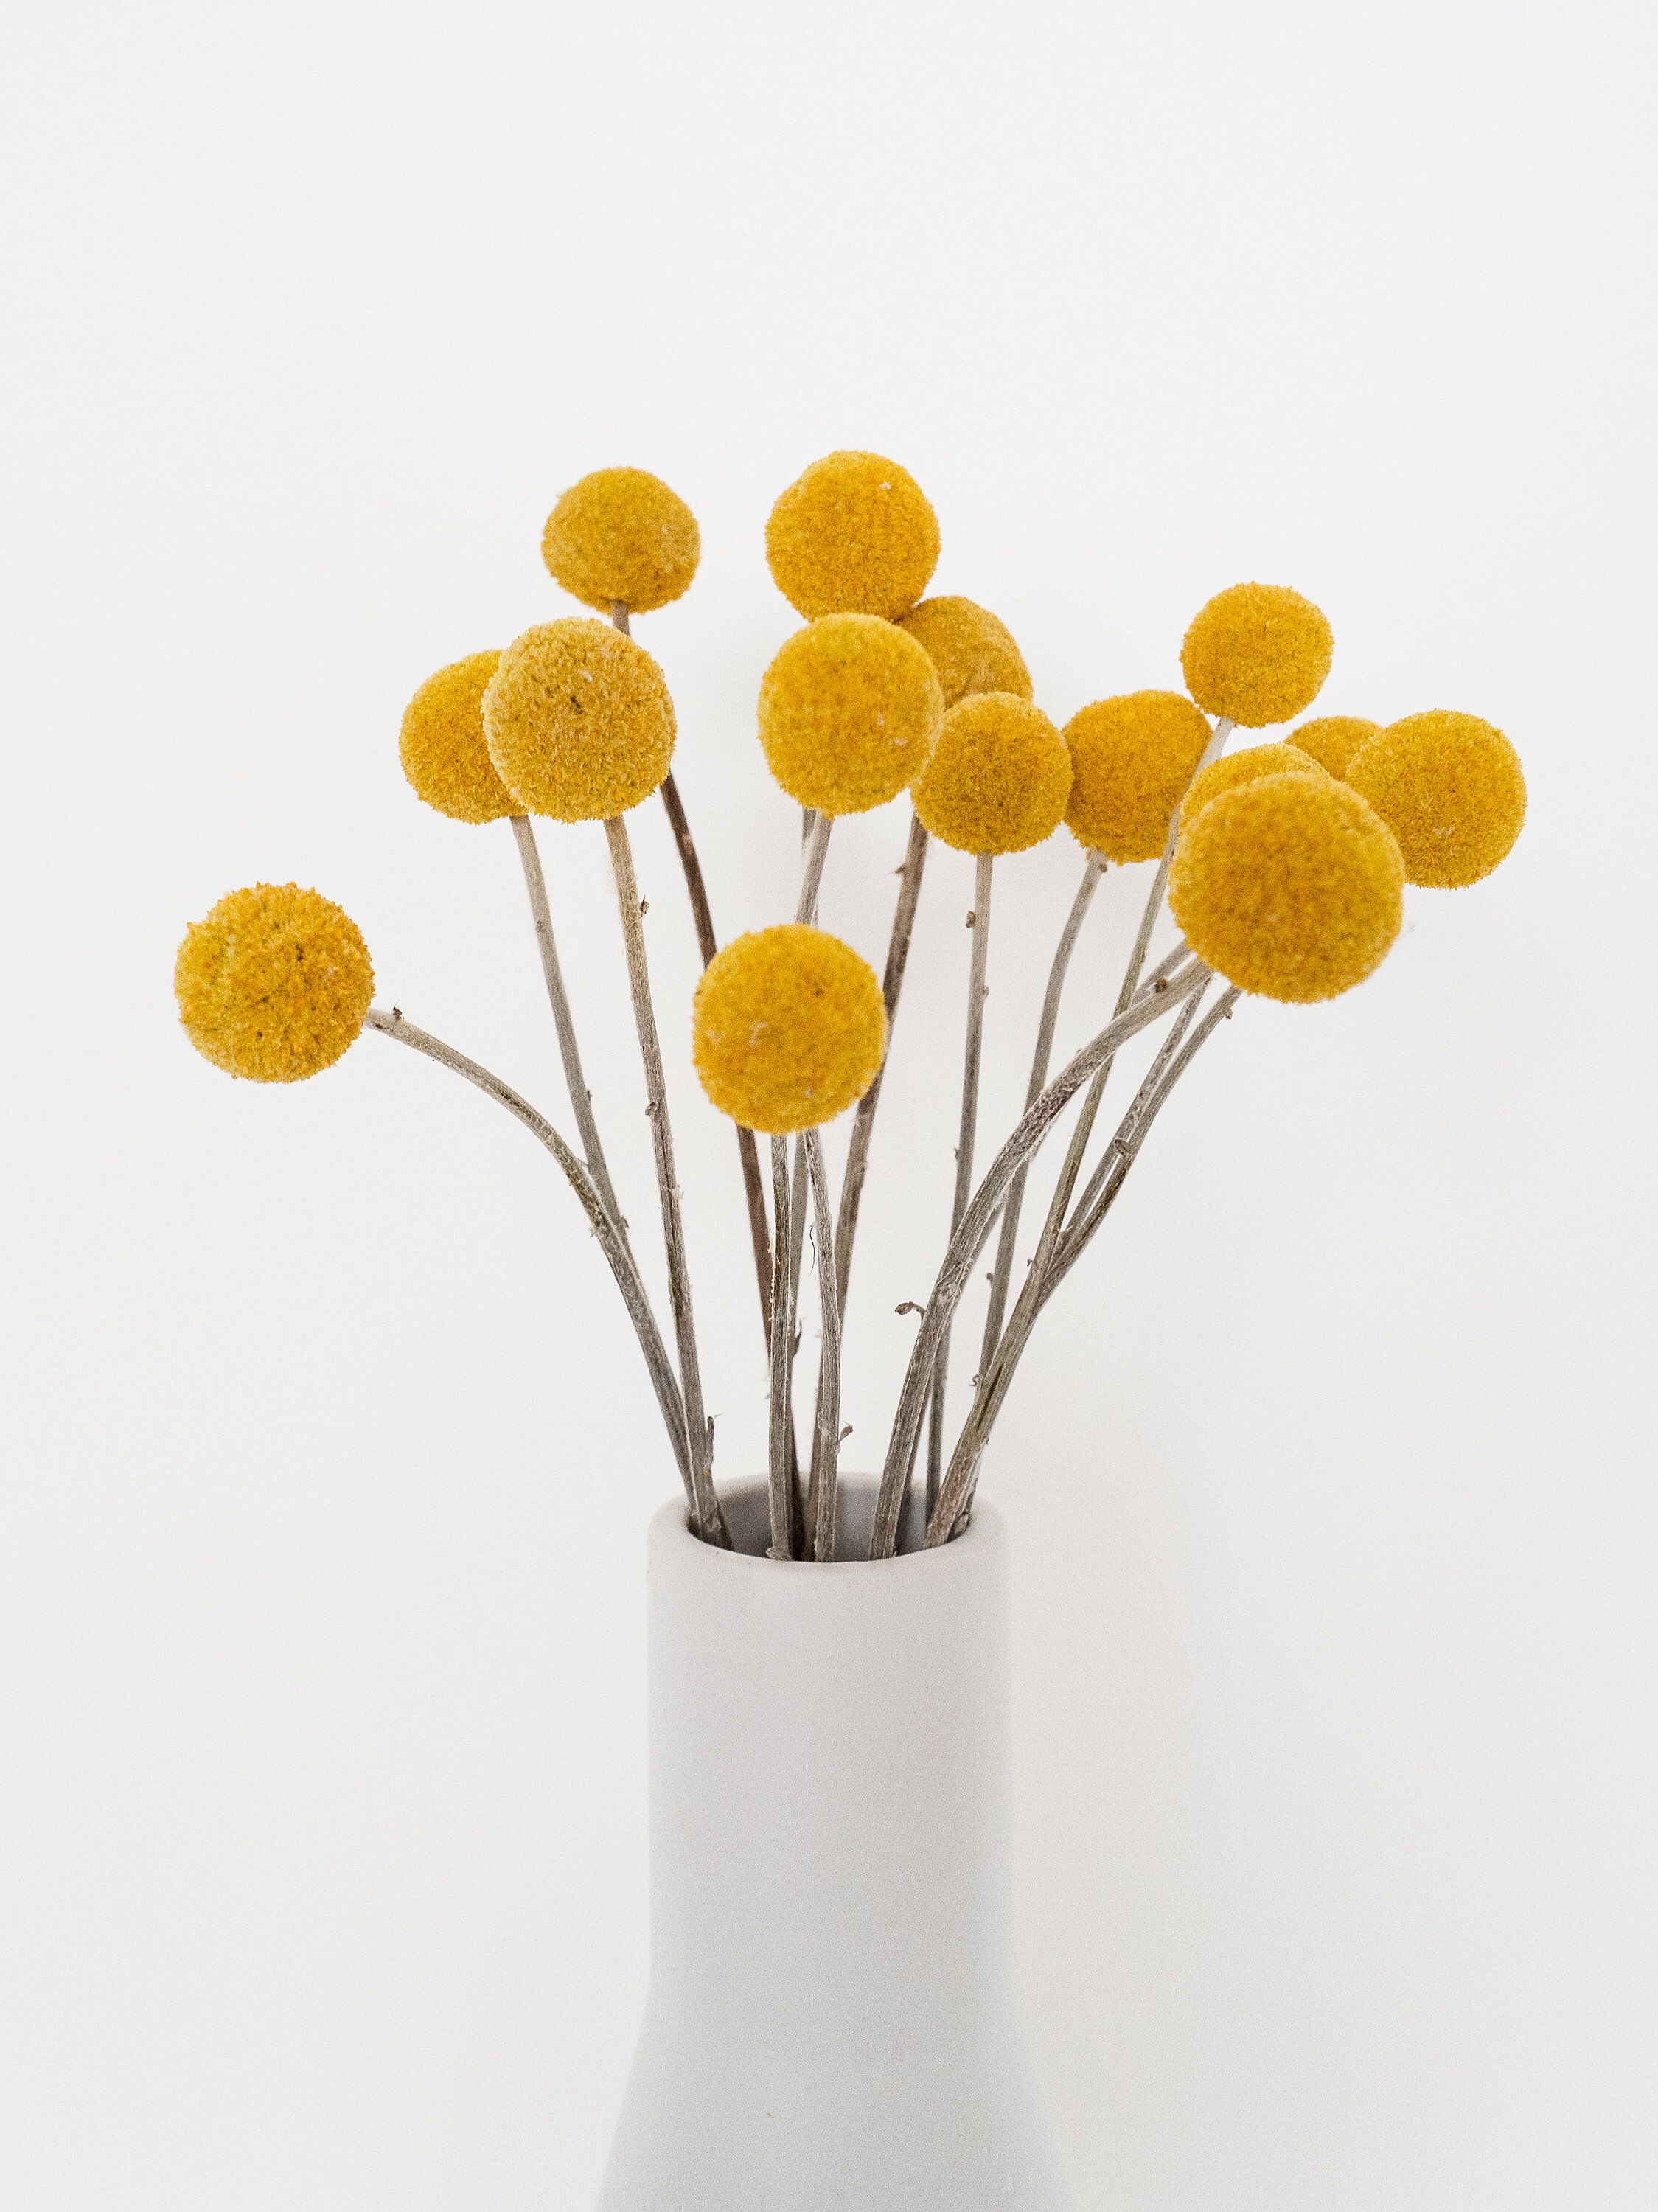 Dried Billy Buttons Craspedia 15 Stems Dried Flowers Dried Flowers Arrange Rustic Wedding Home Decor Vase Filler Dried Flowers Billy Buttons Flower Decorations